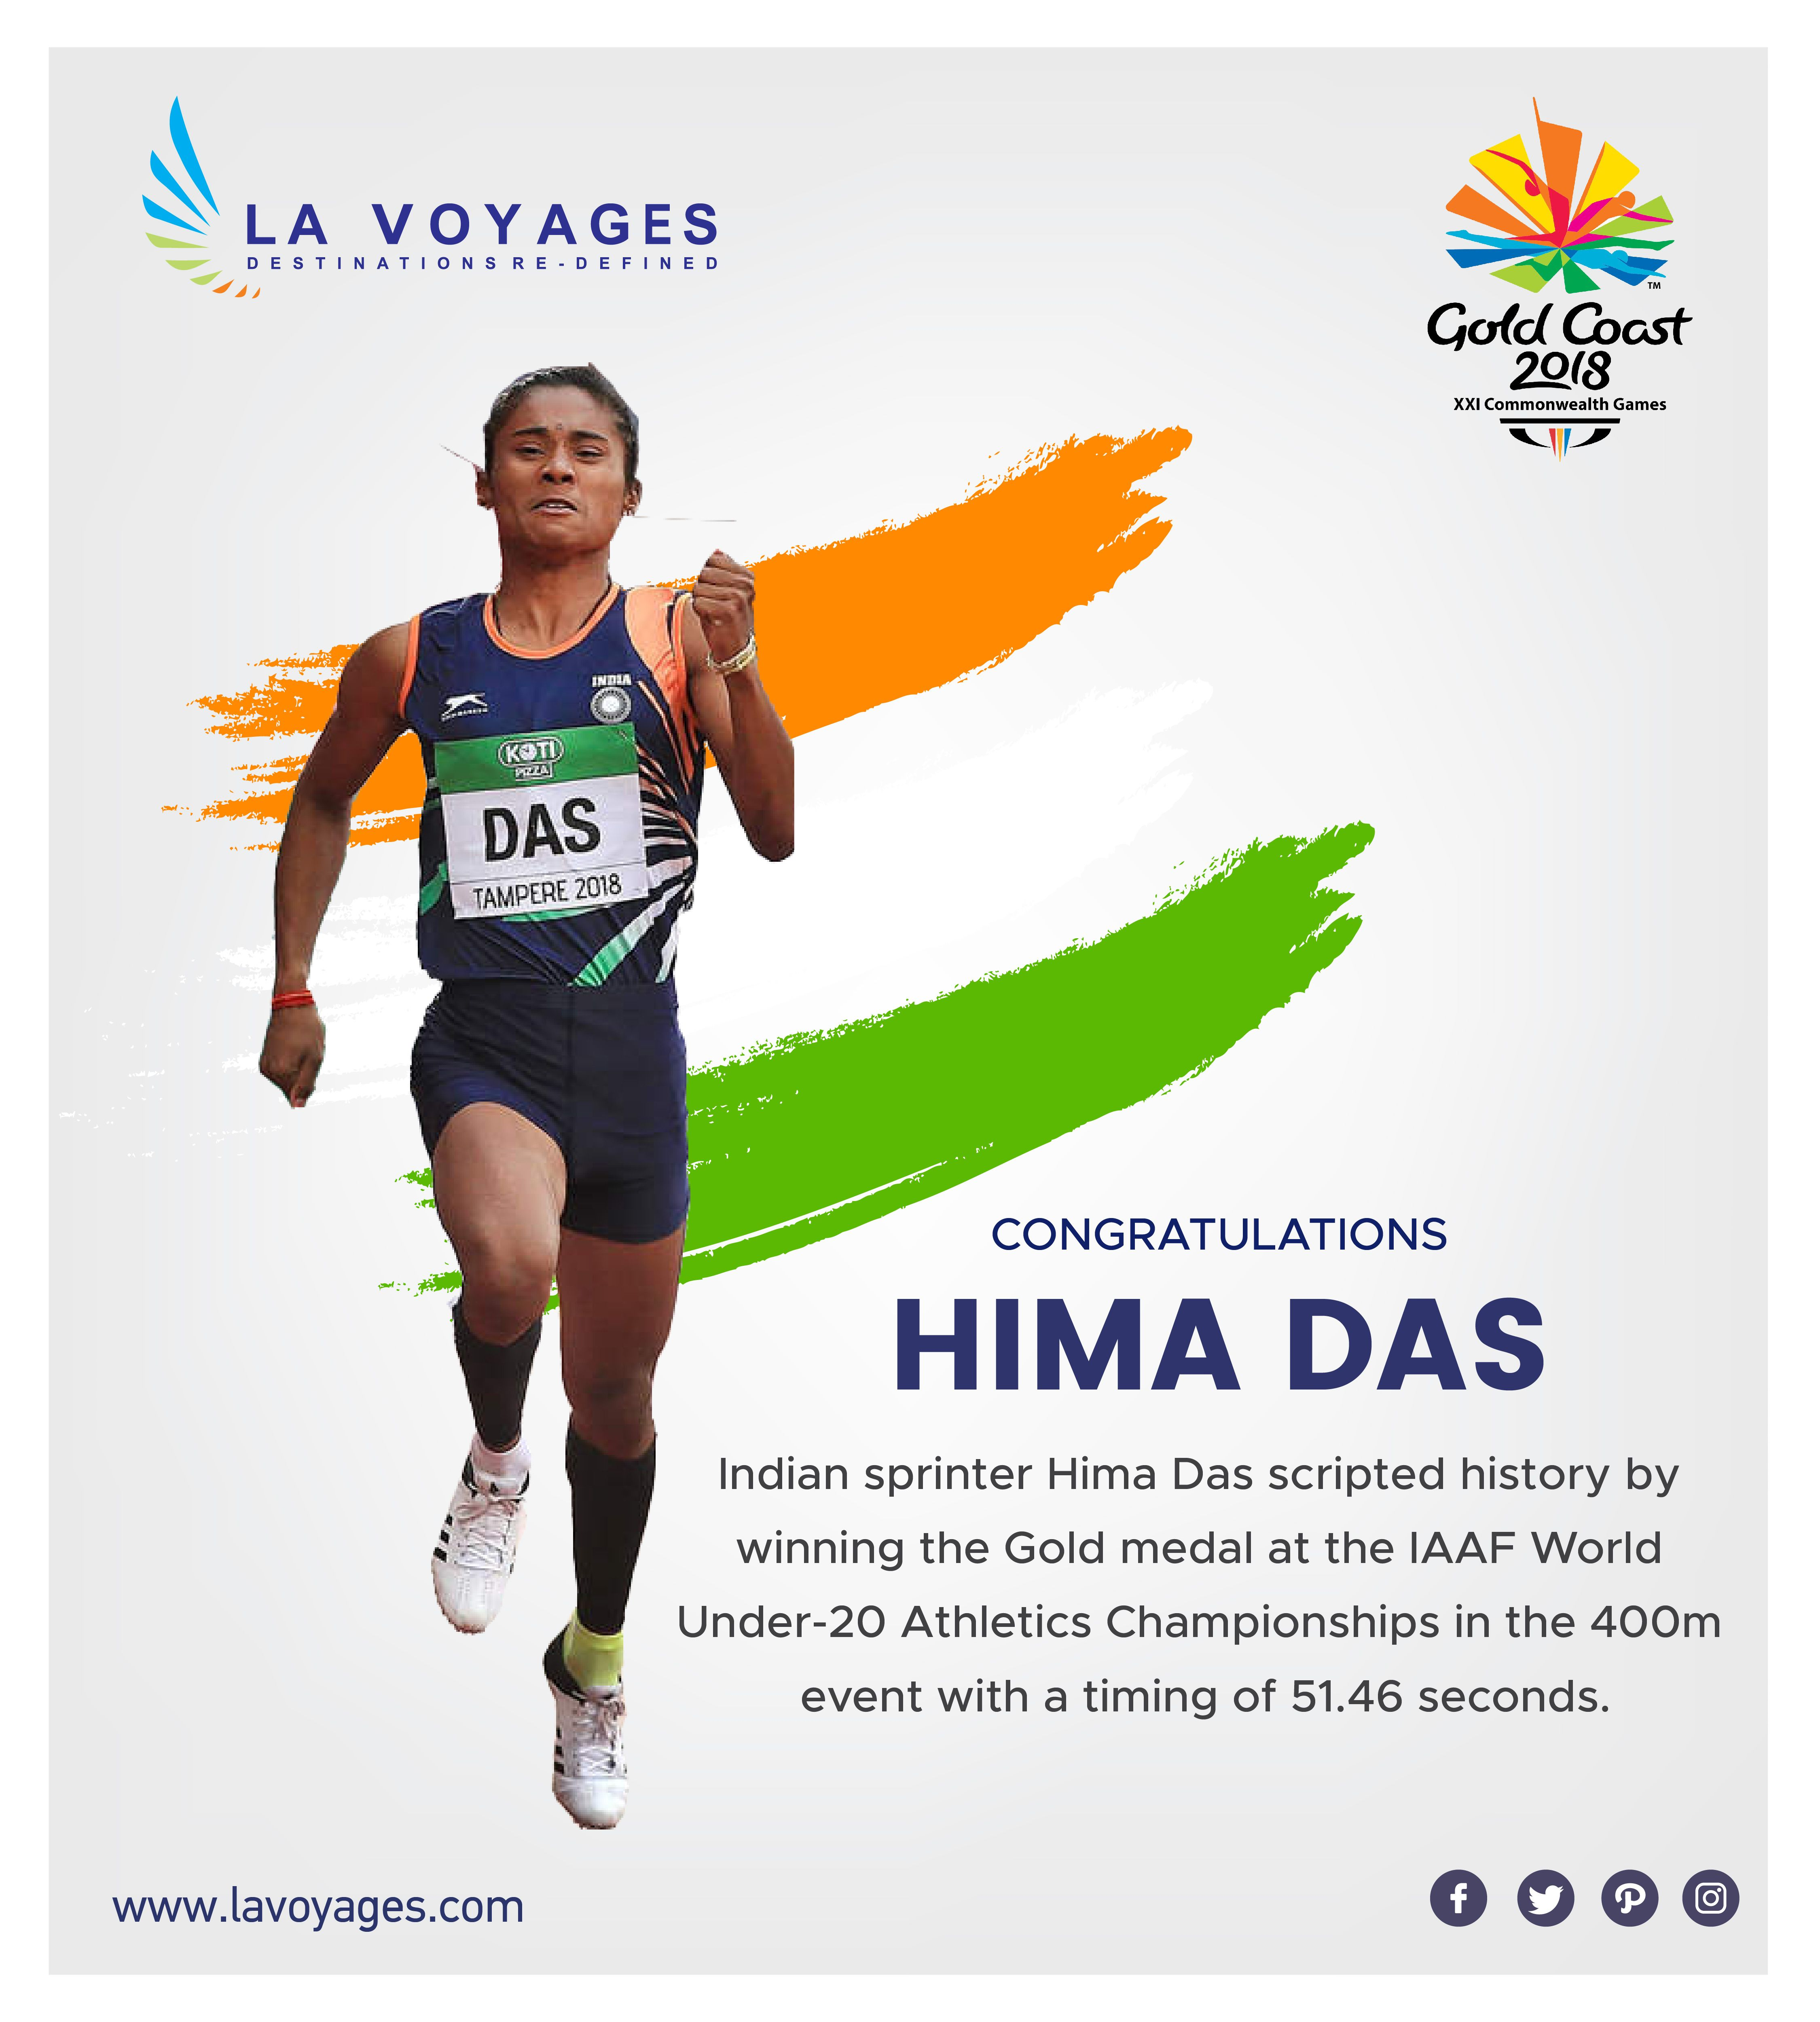 Congratulation Hima Das, scripted history by the